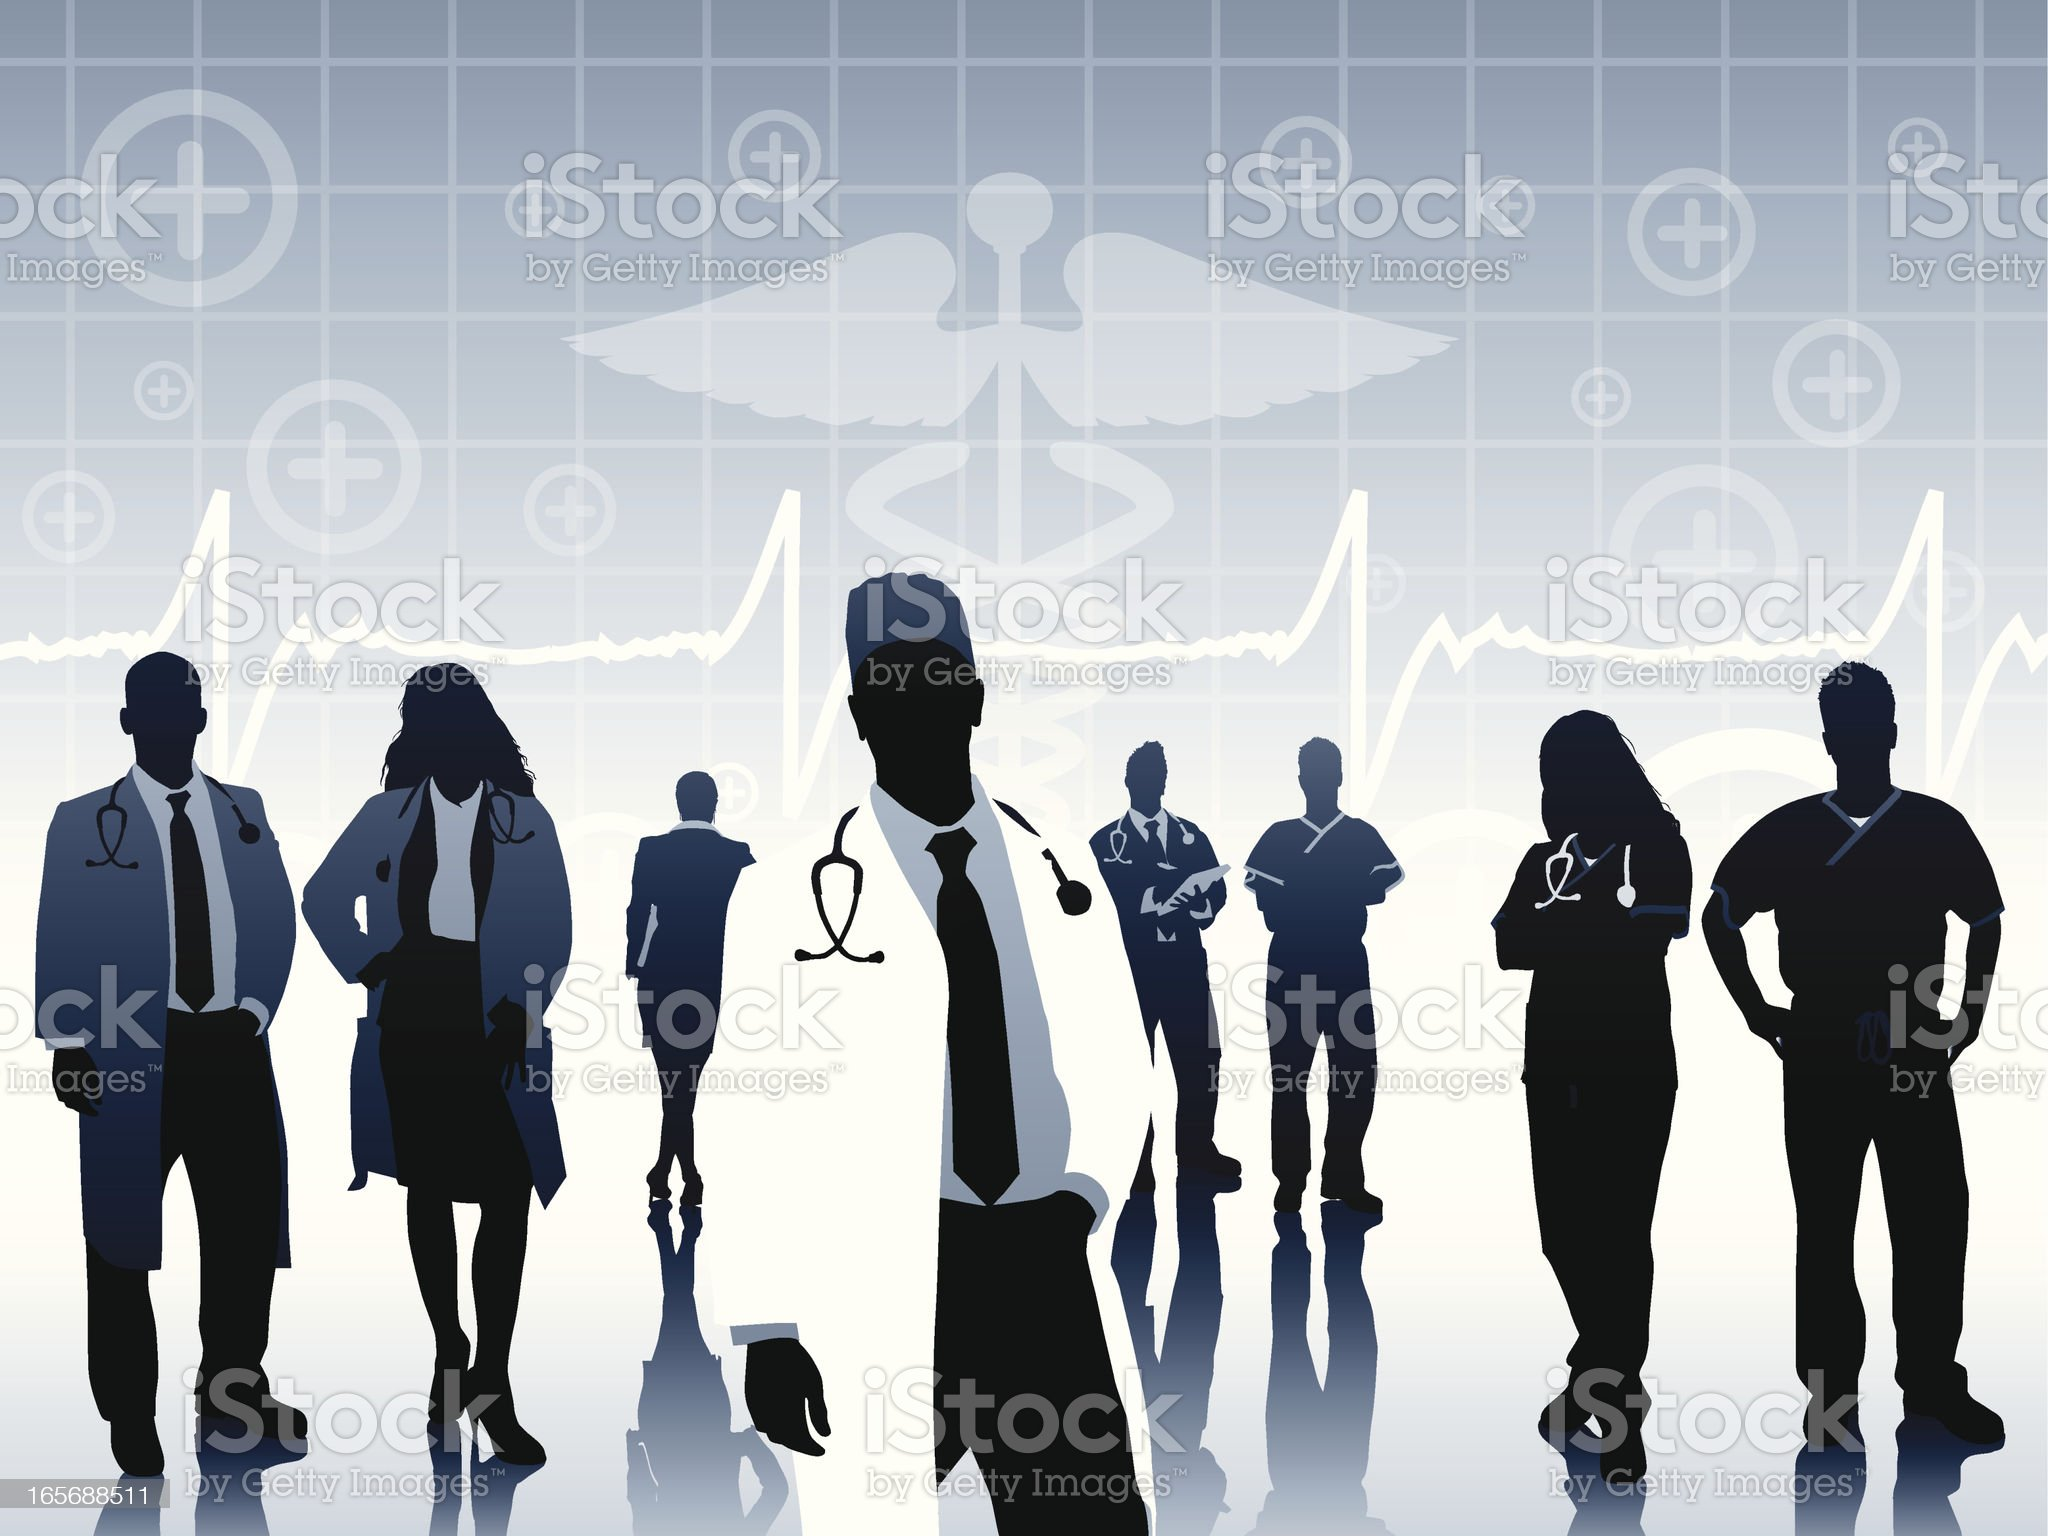 Silhouettes of Doctor on medical themed background royalty-free stock vector art